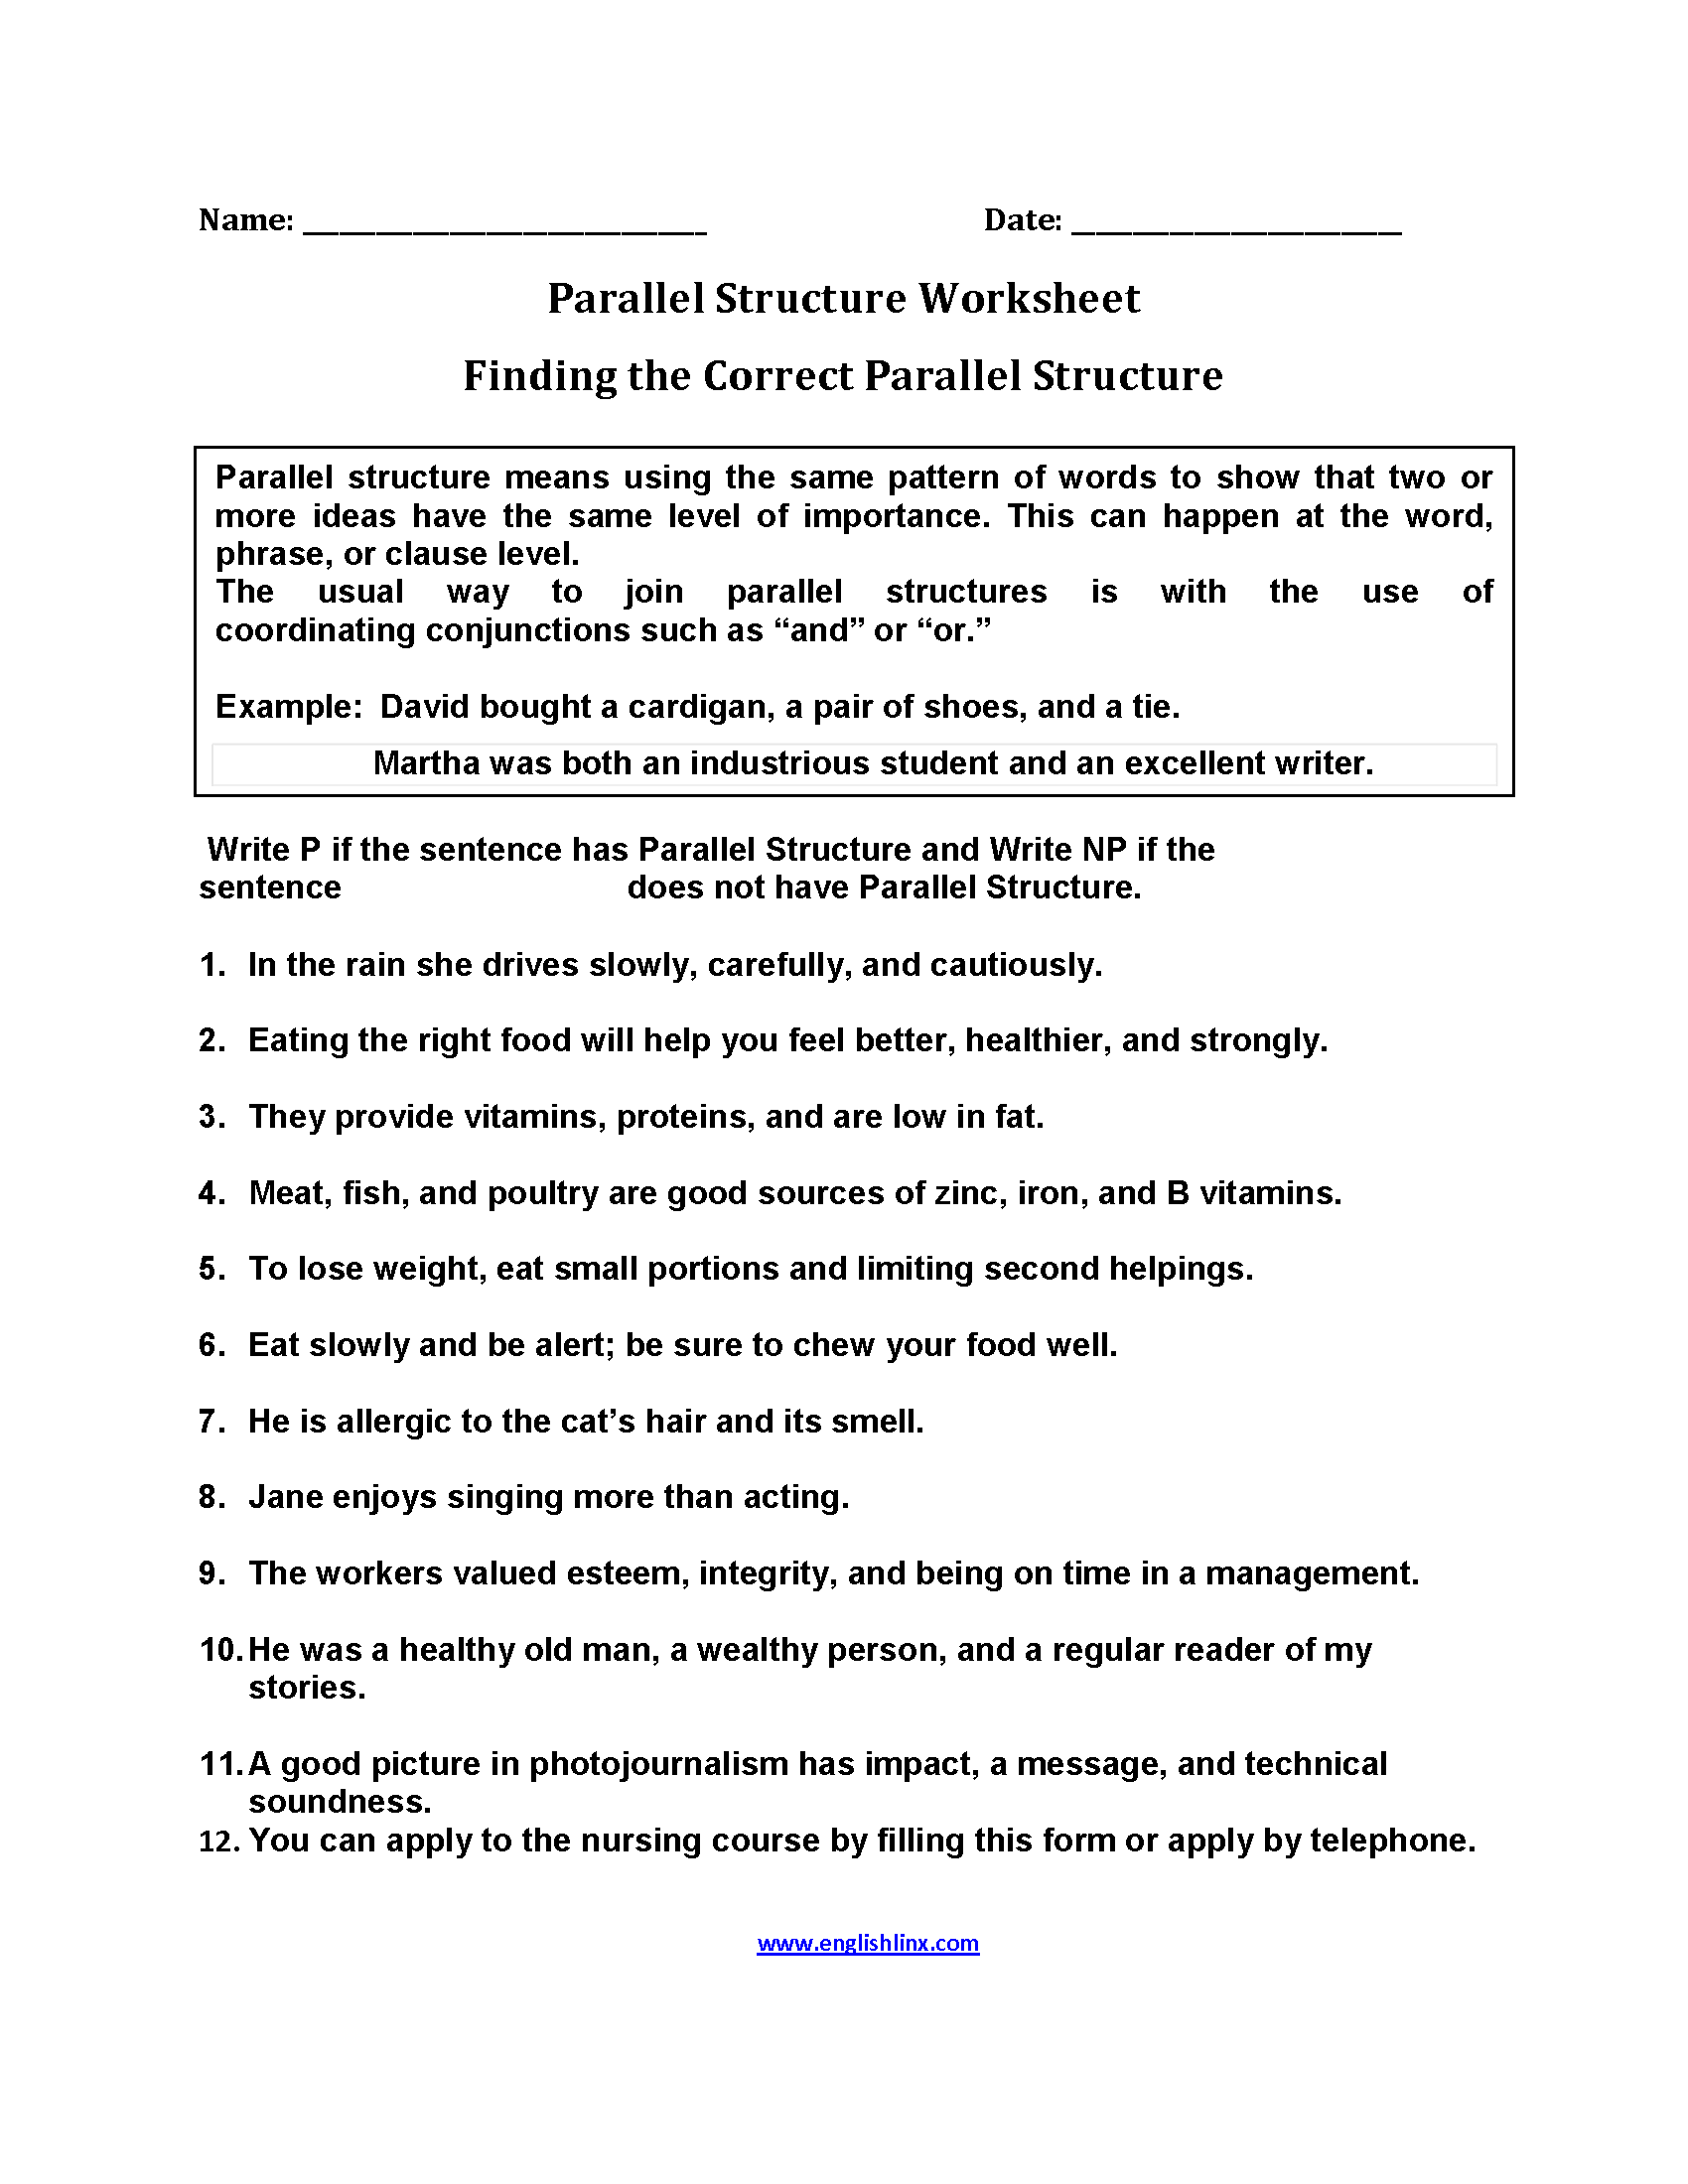 worksheet Story Structure Worksheet finding parallel structure worksheets english language pinterest worksheets